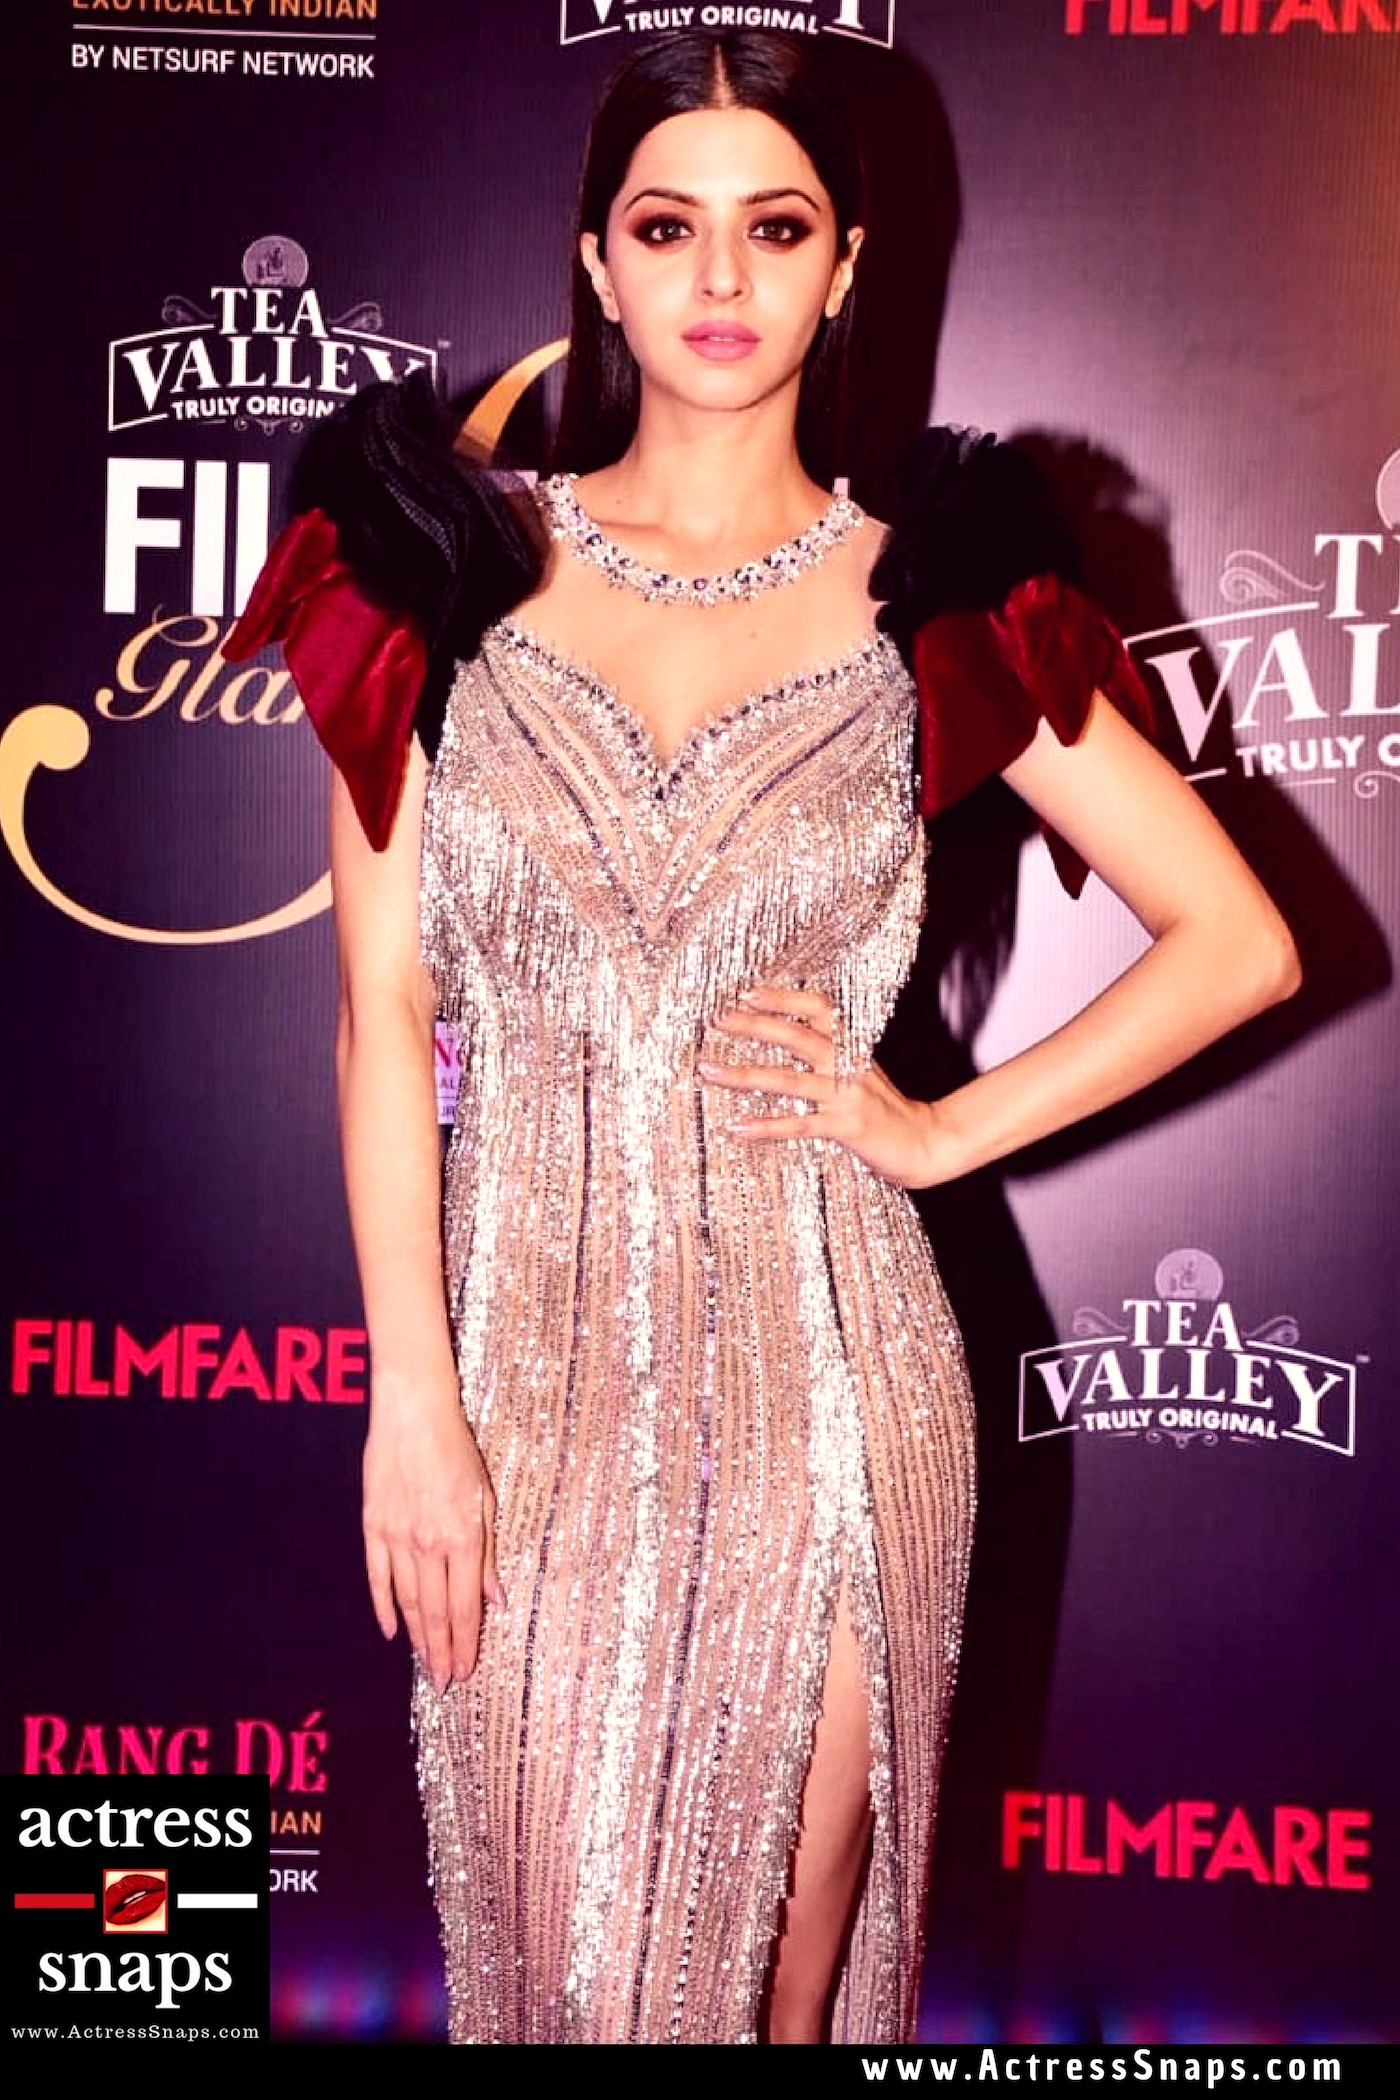 Sexy Vedhika Photos from filmfare Event - Sexy Actress Pictures   Hot Actress Pictures - ActressSnaps.com